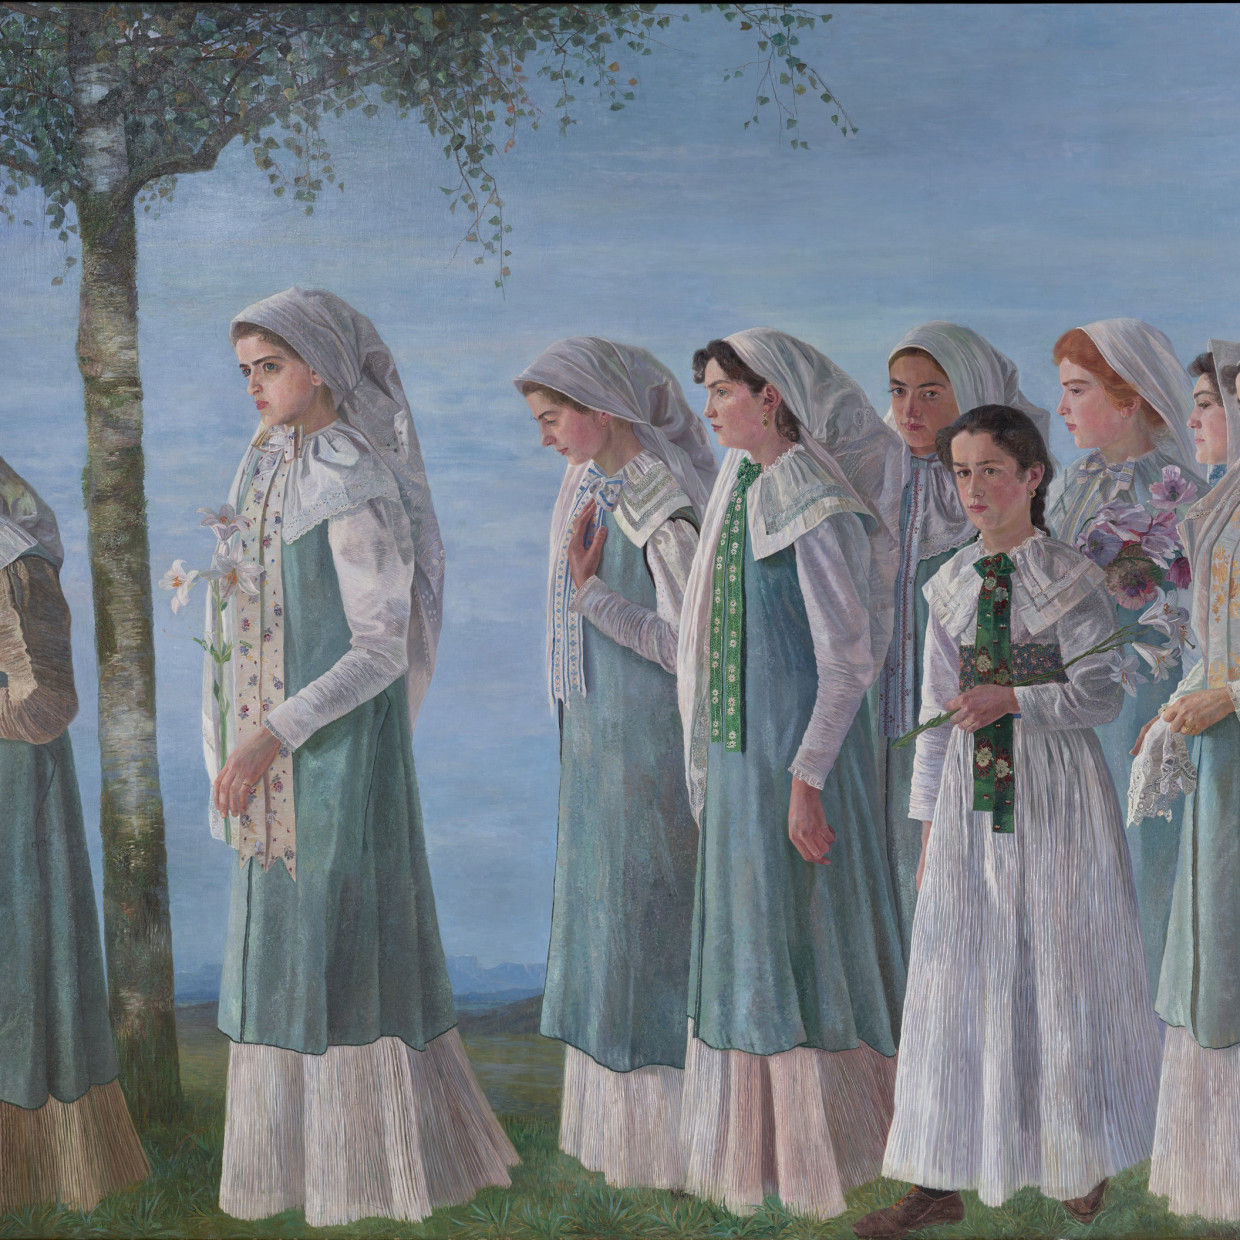 Karl Mediz, Sunday Procession of Gottscheer Women